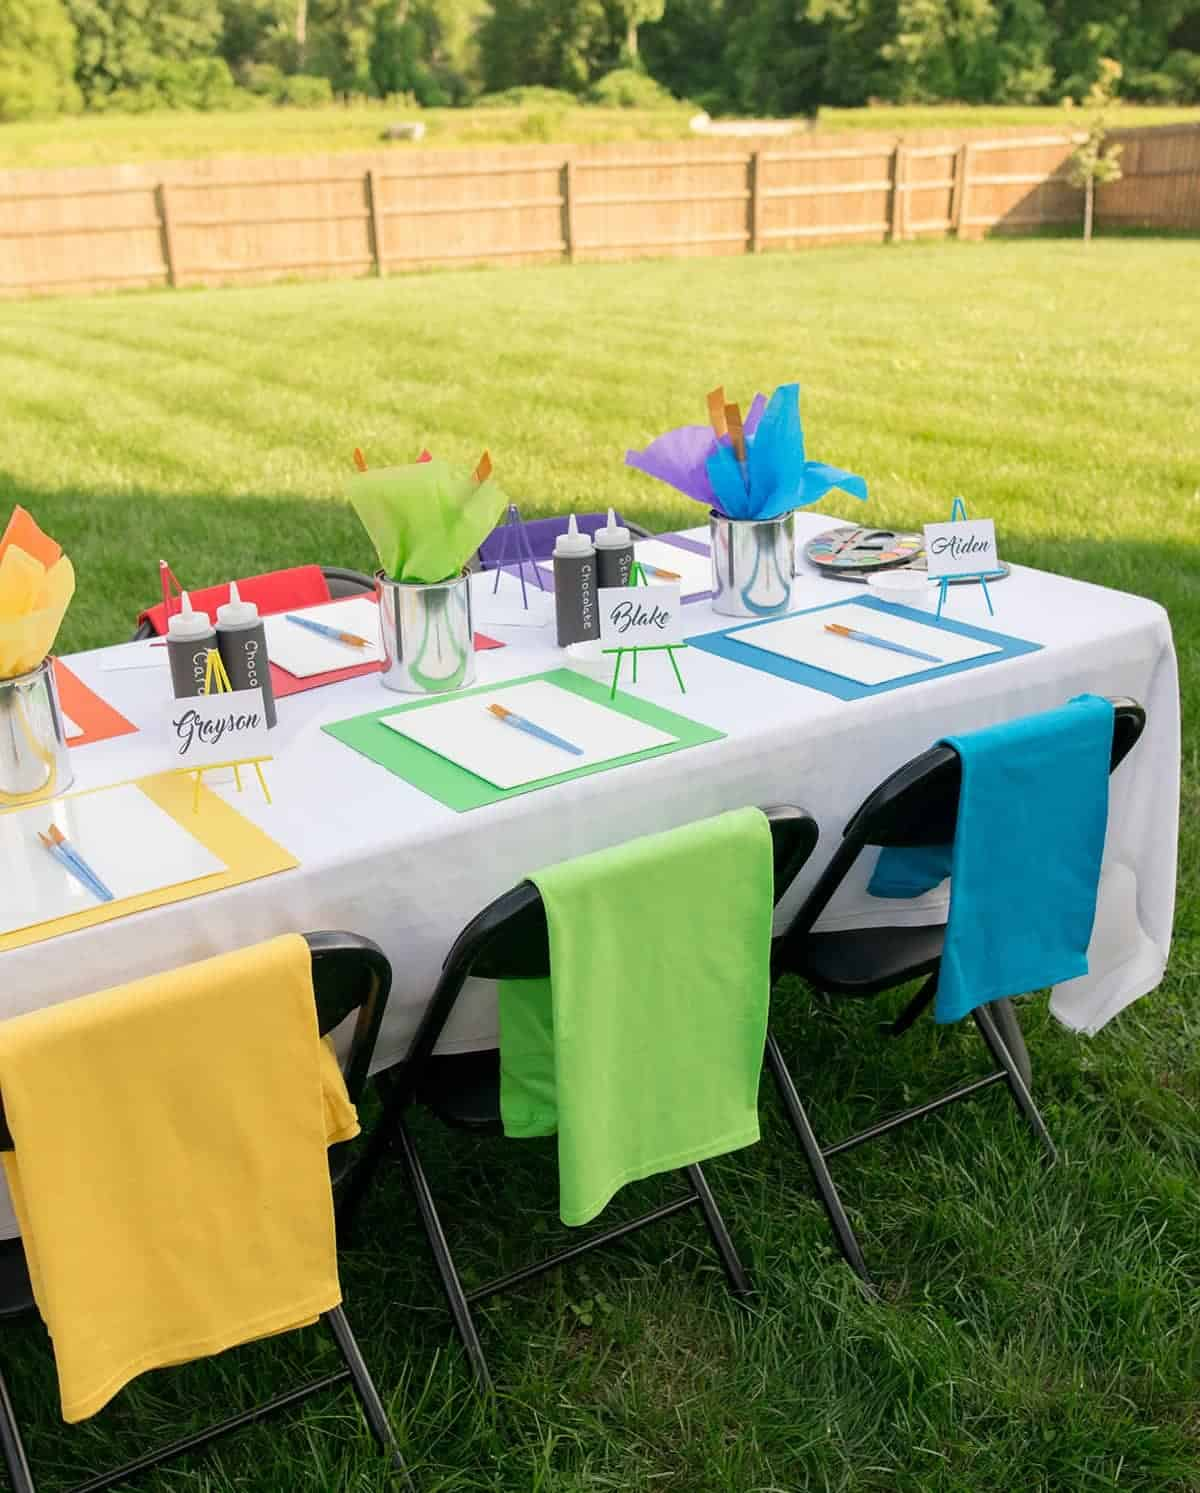 Backyard playdate table setting with rainbow place settings and individual painting supplies